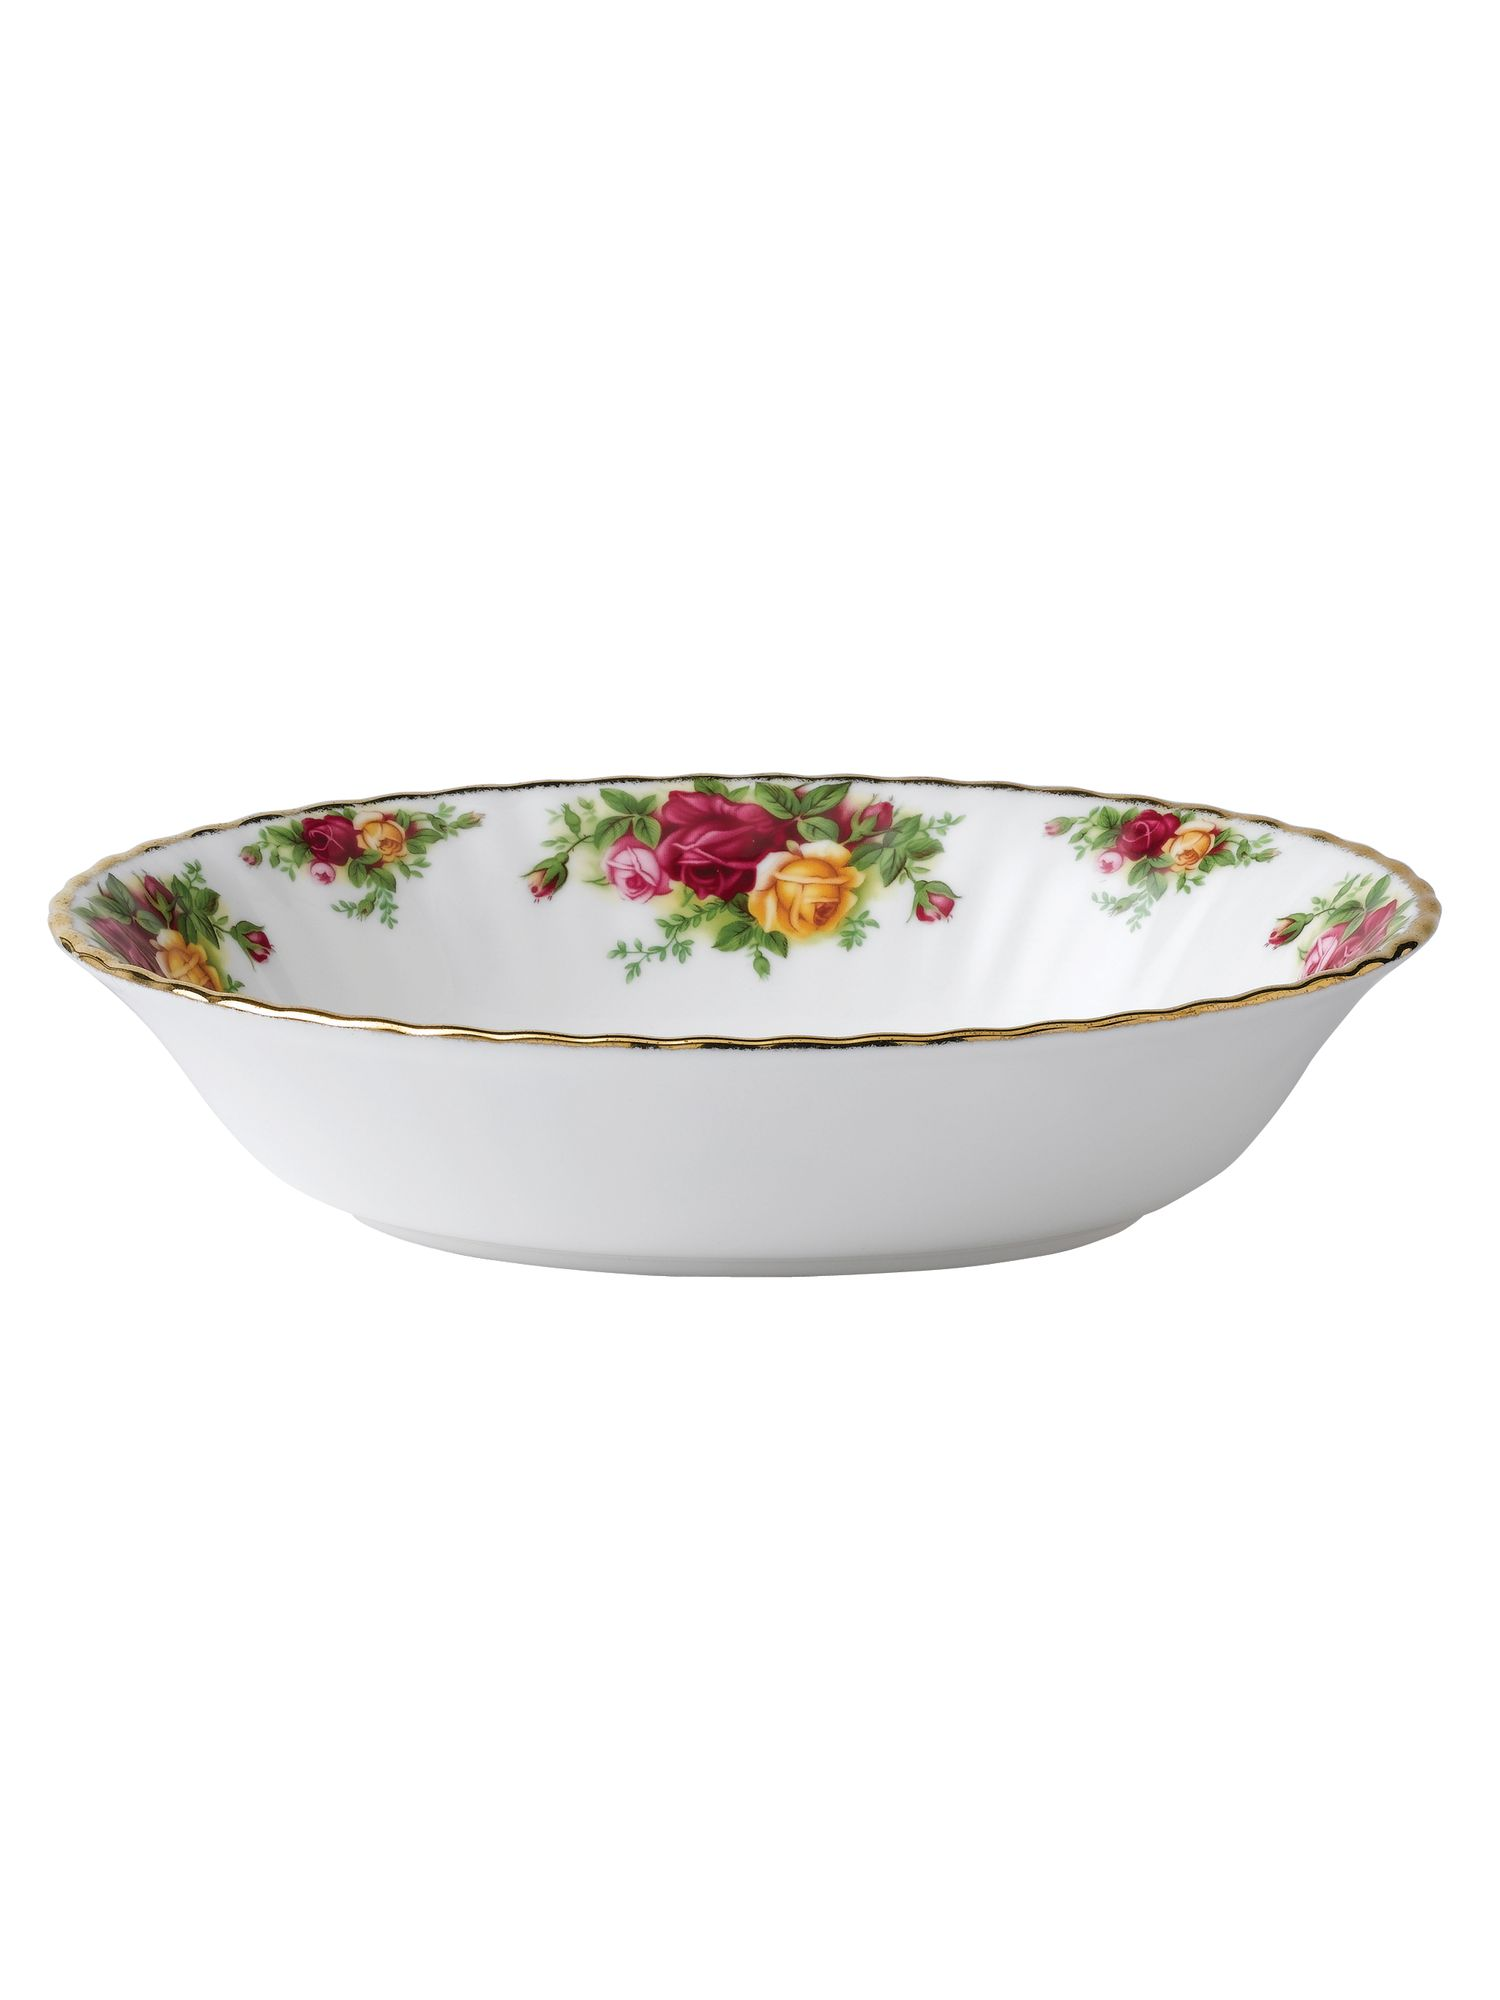 Old country roses 23cm open vegetable dish